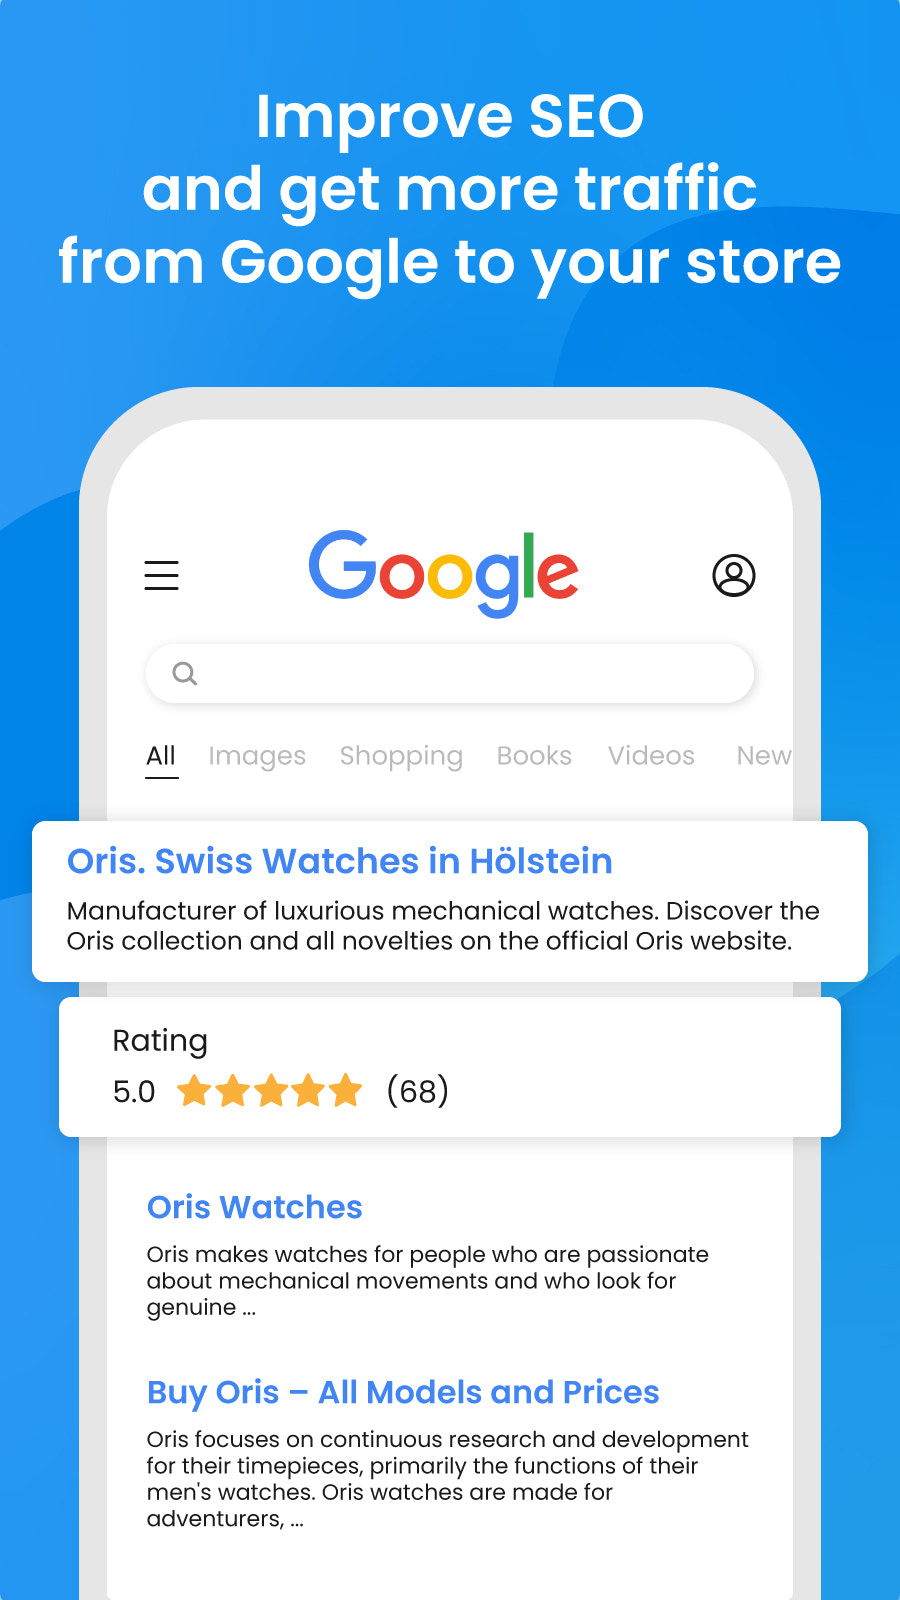 product review aggregator to improve rich snippet